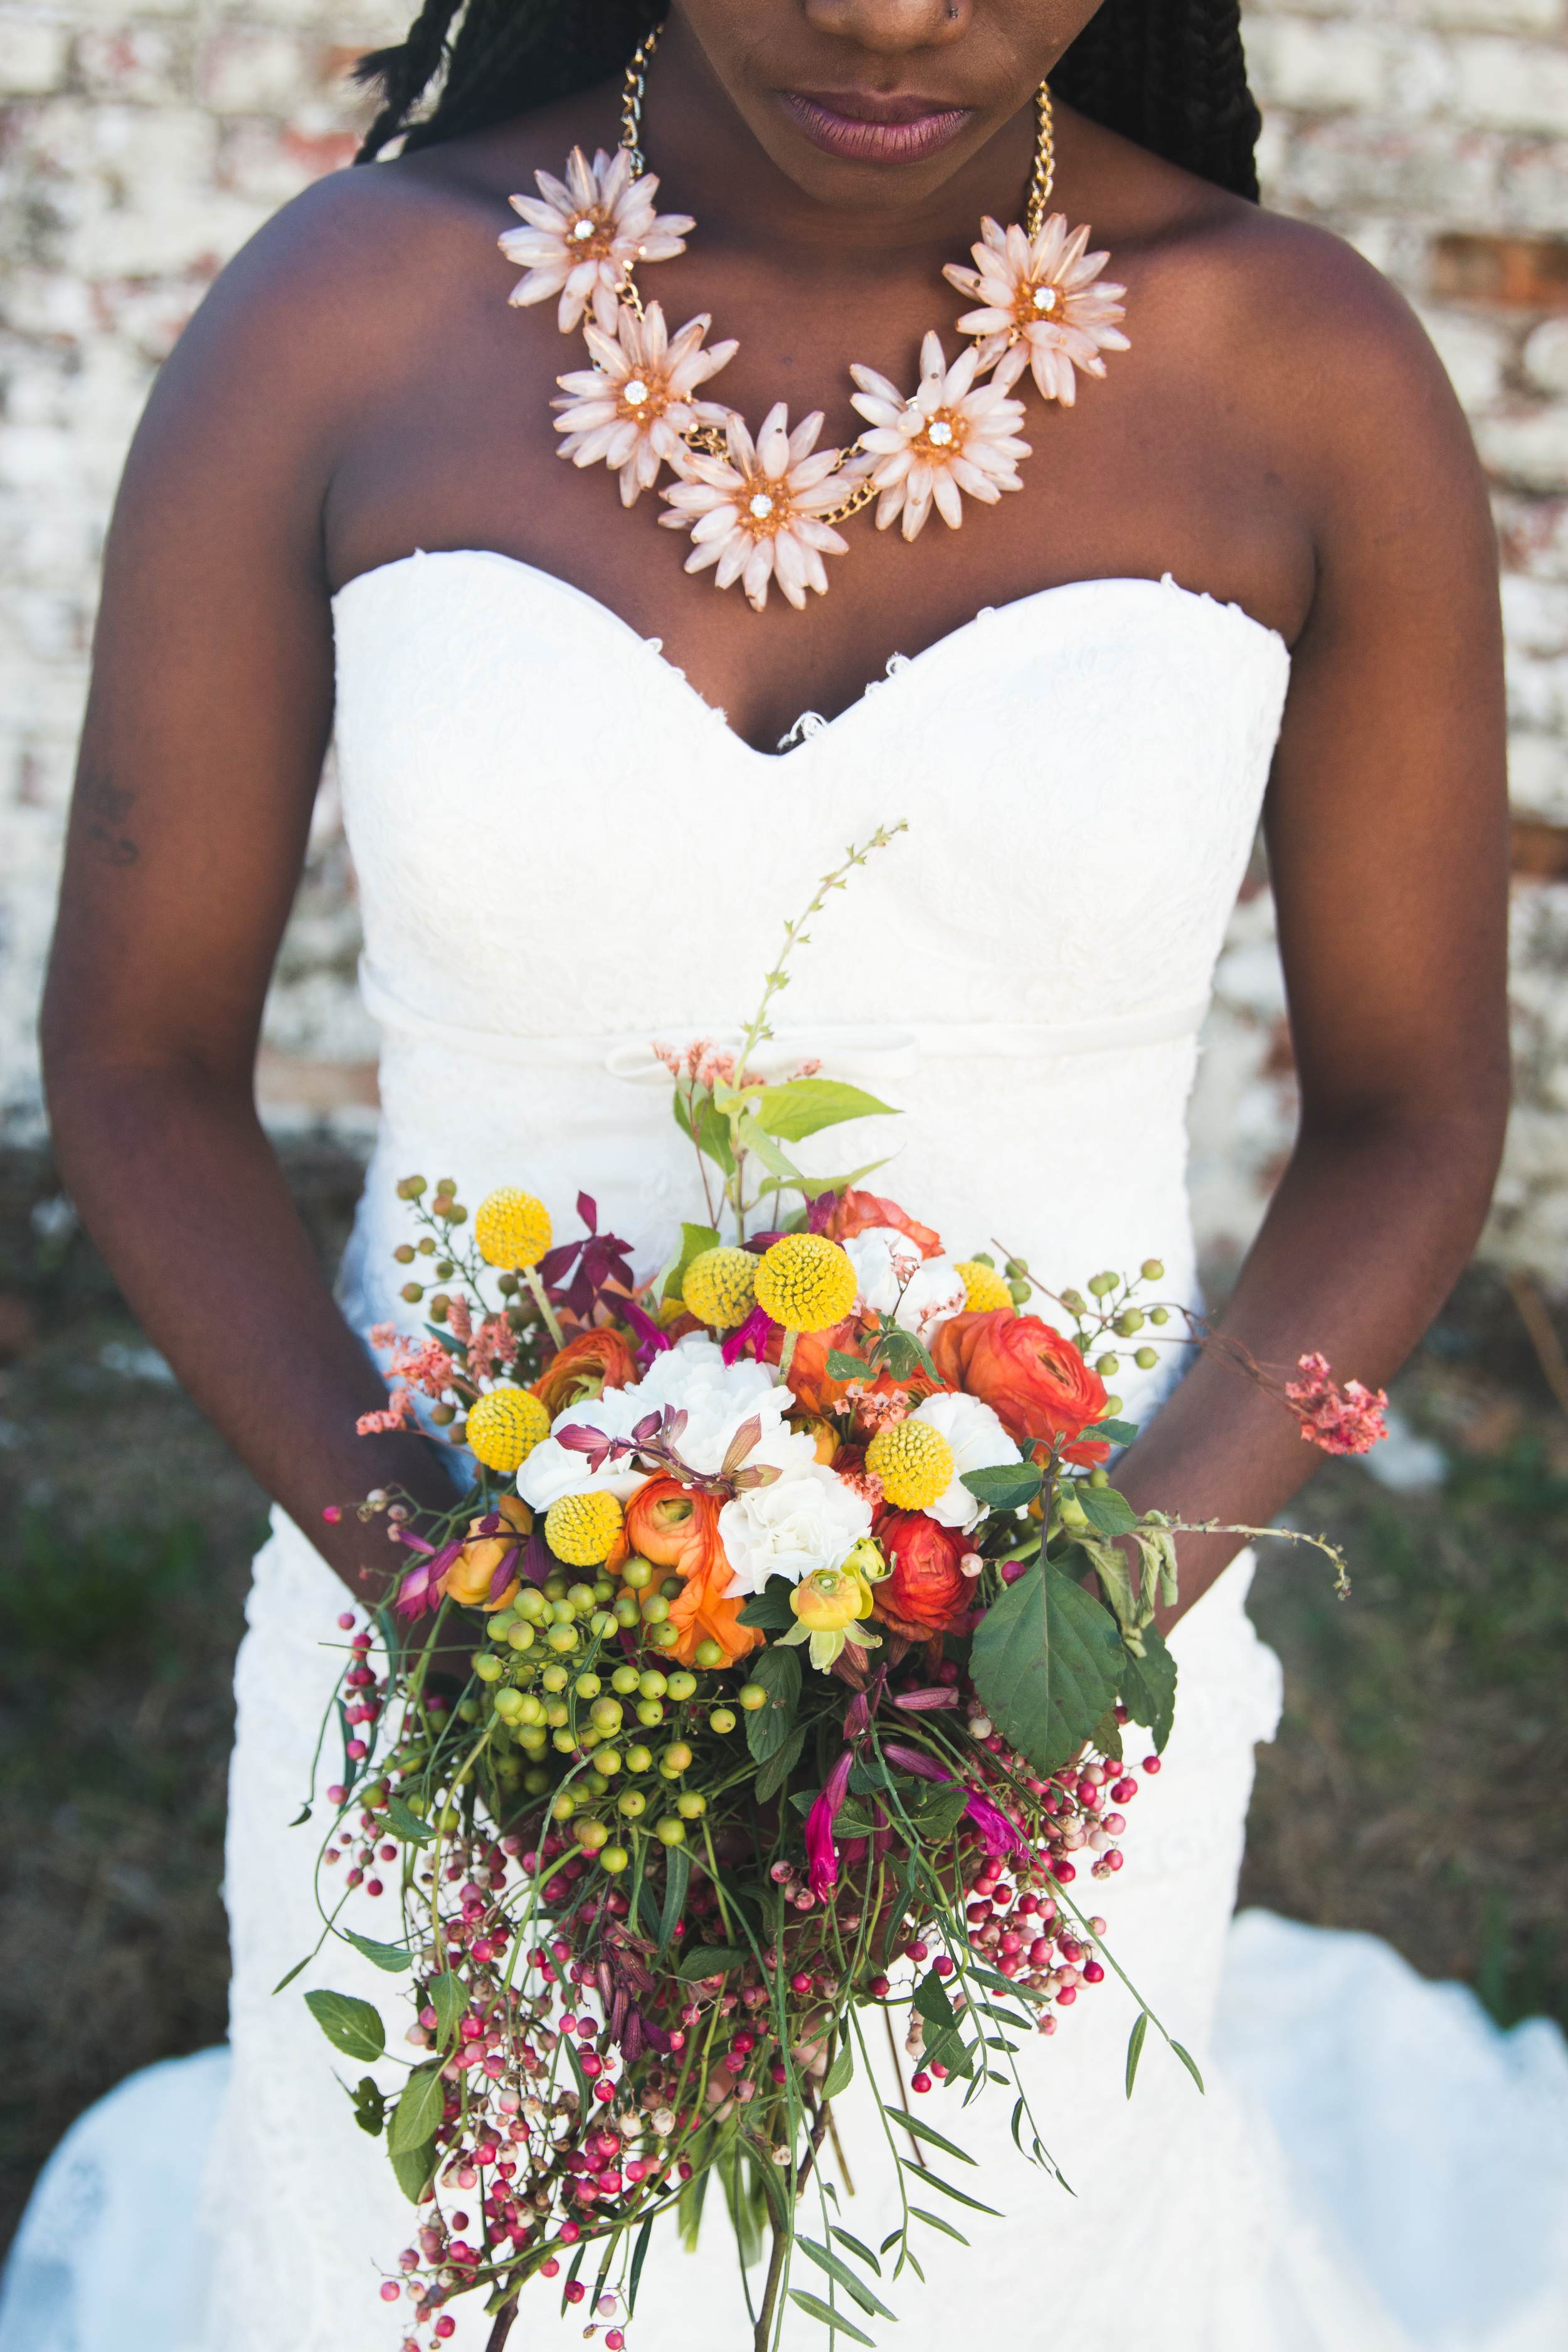 Adding some sprigs of chocolate mint leaves from the backyard was a GOOD decision. The brides gets to smell it all day! Flowers styled by Laurel Avenue.